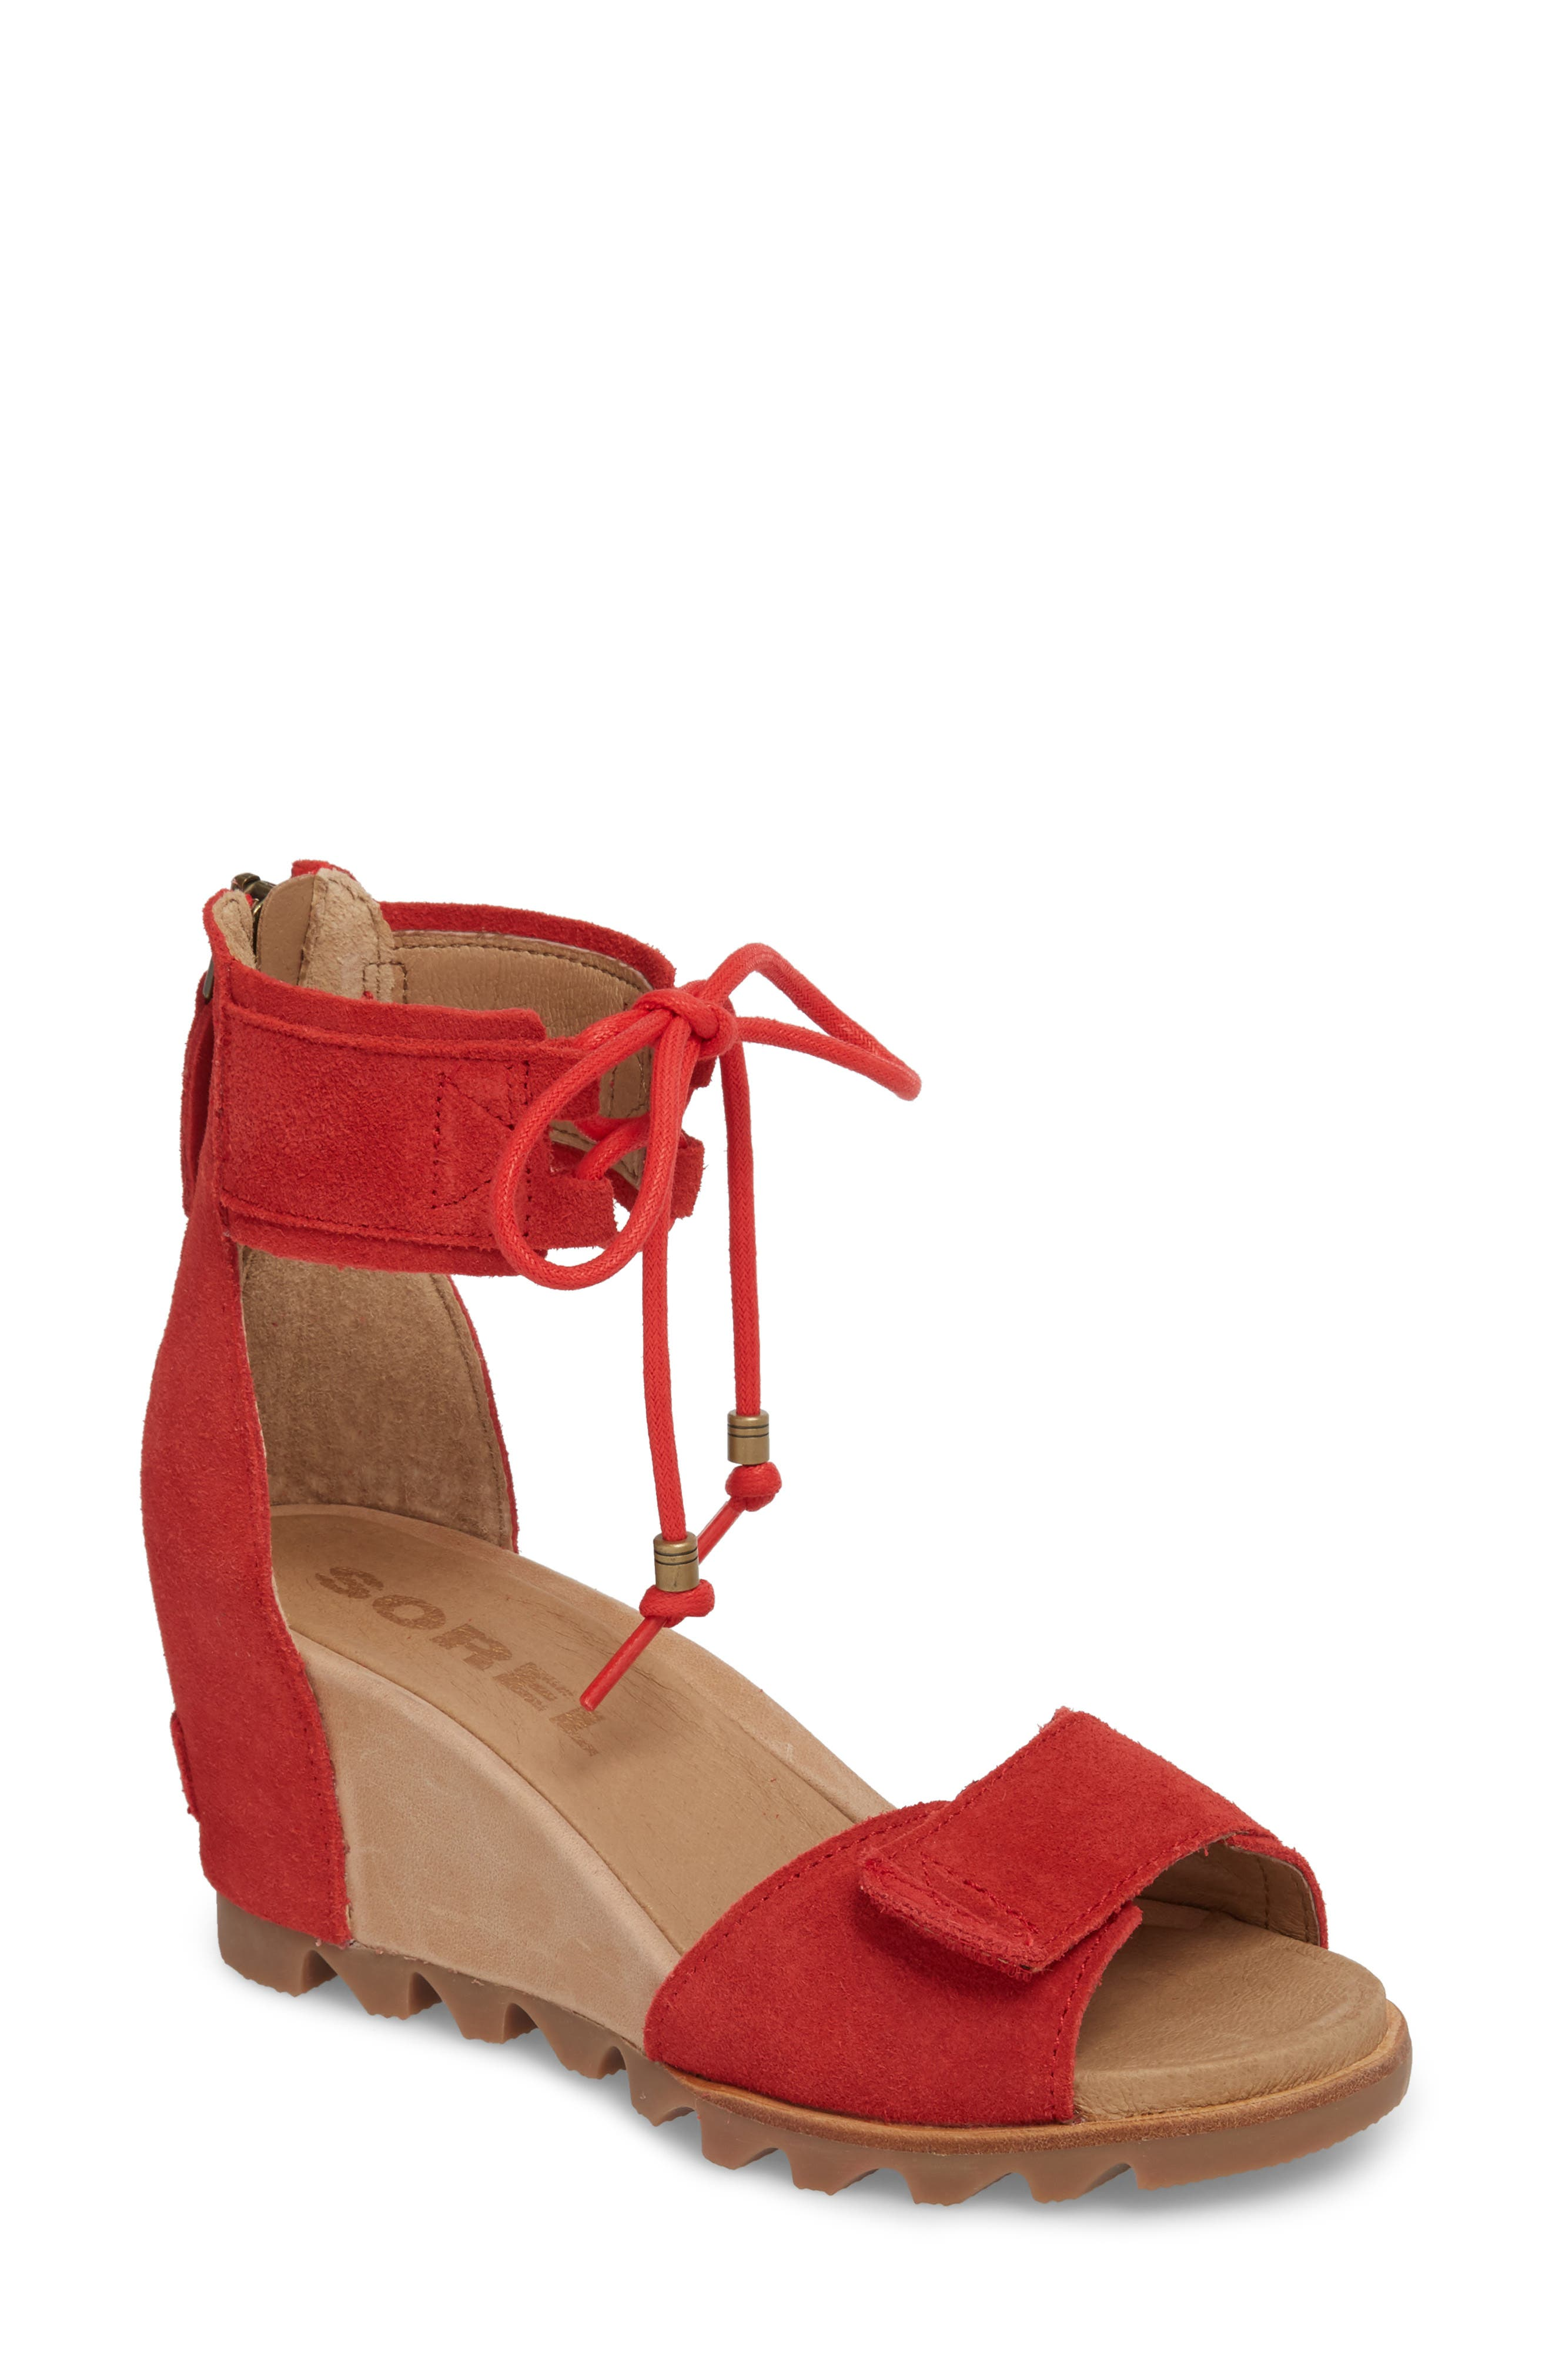 Joanie Cuff Wedge Sandal,                         Main,                         color, Bright Red